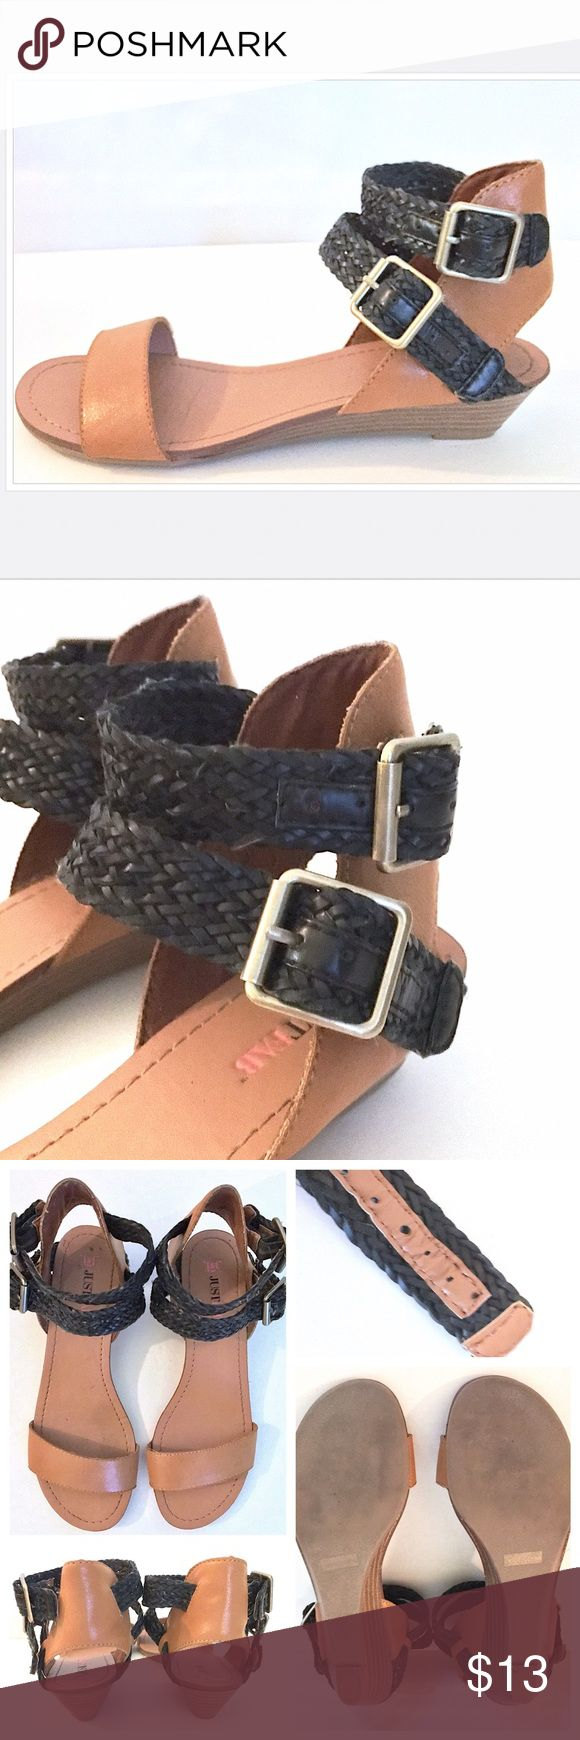 JustFab Black/Tan Faux Leather Kitten Heel Sandal JustFab Black/Tan Faux Leather Kitten Heel Sandal//Size 7//In Great Condition//Worn Once//Let me know if you need add'l info or pics😁 JustFab Shoes Sandals